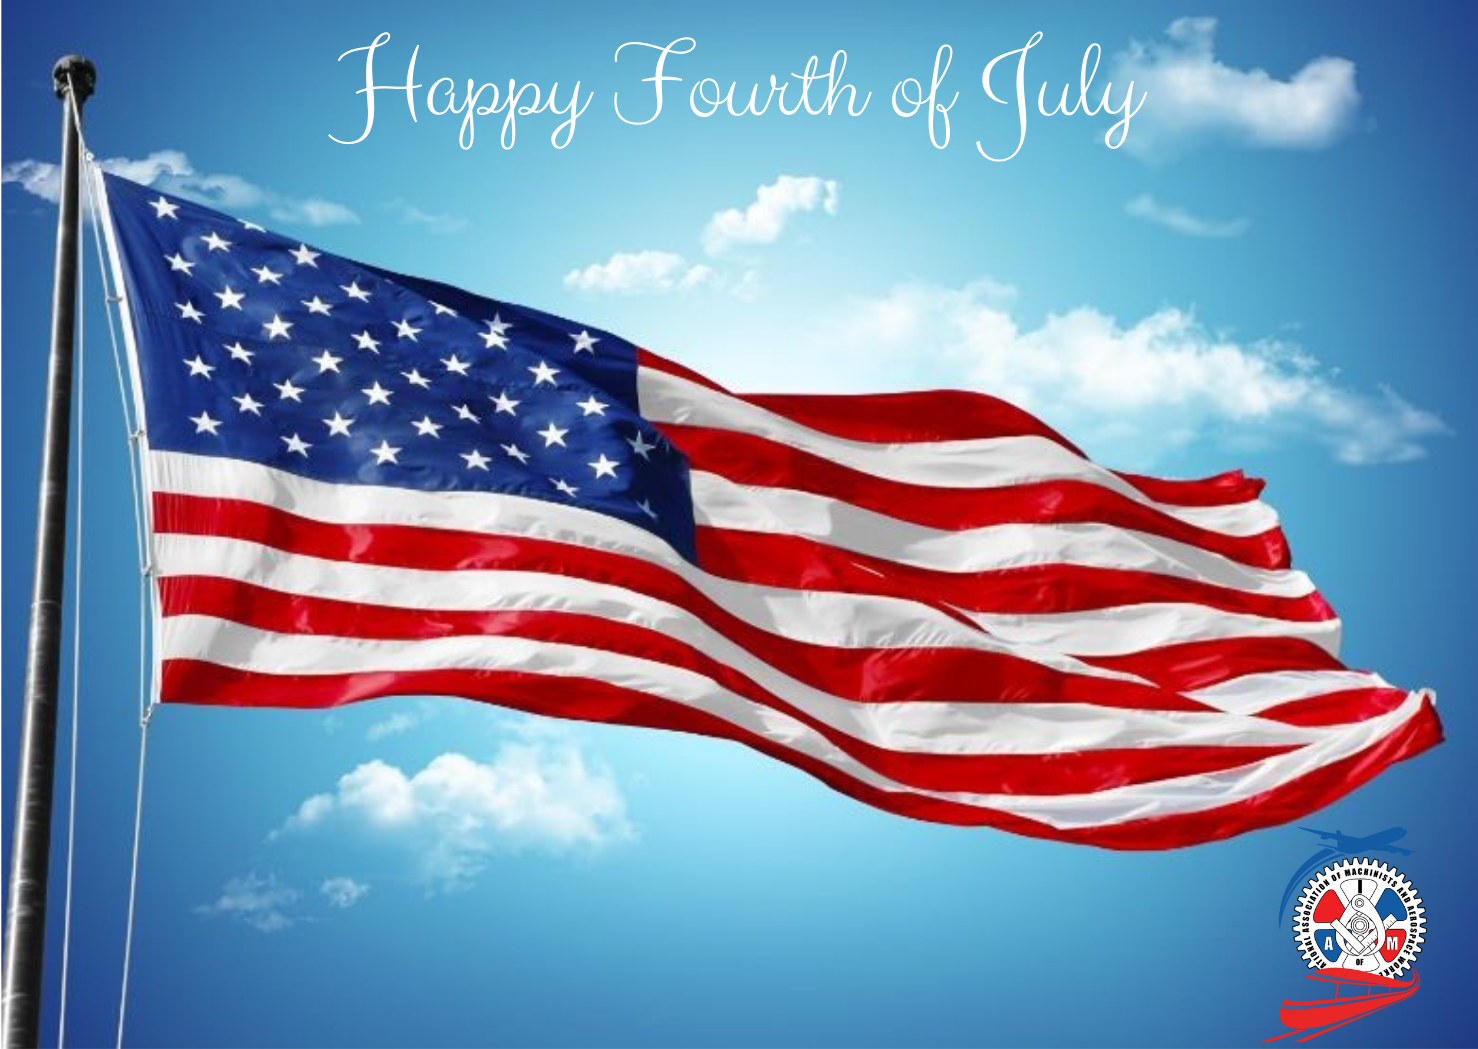 A Fourth of July Message from Richard Johnsen